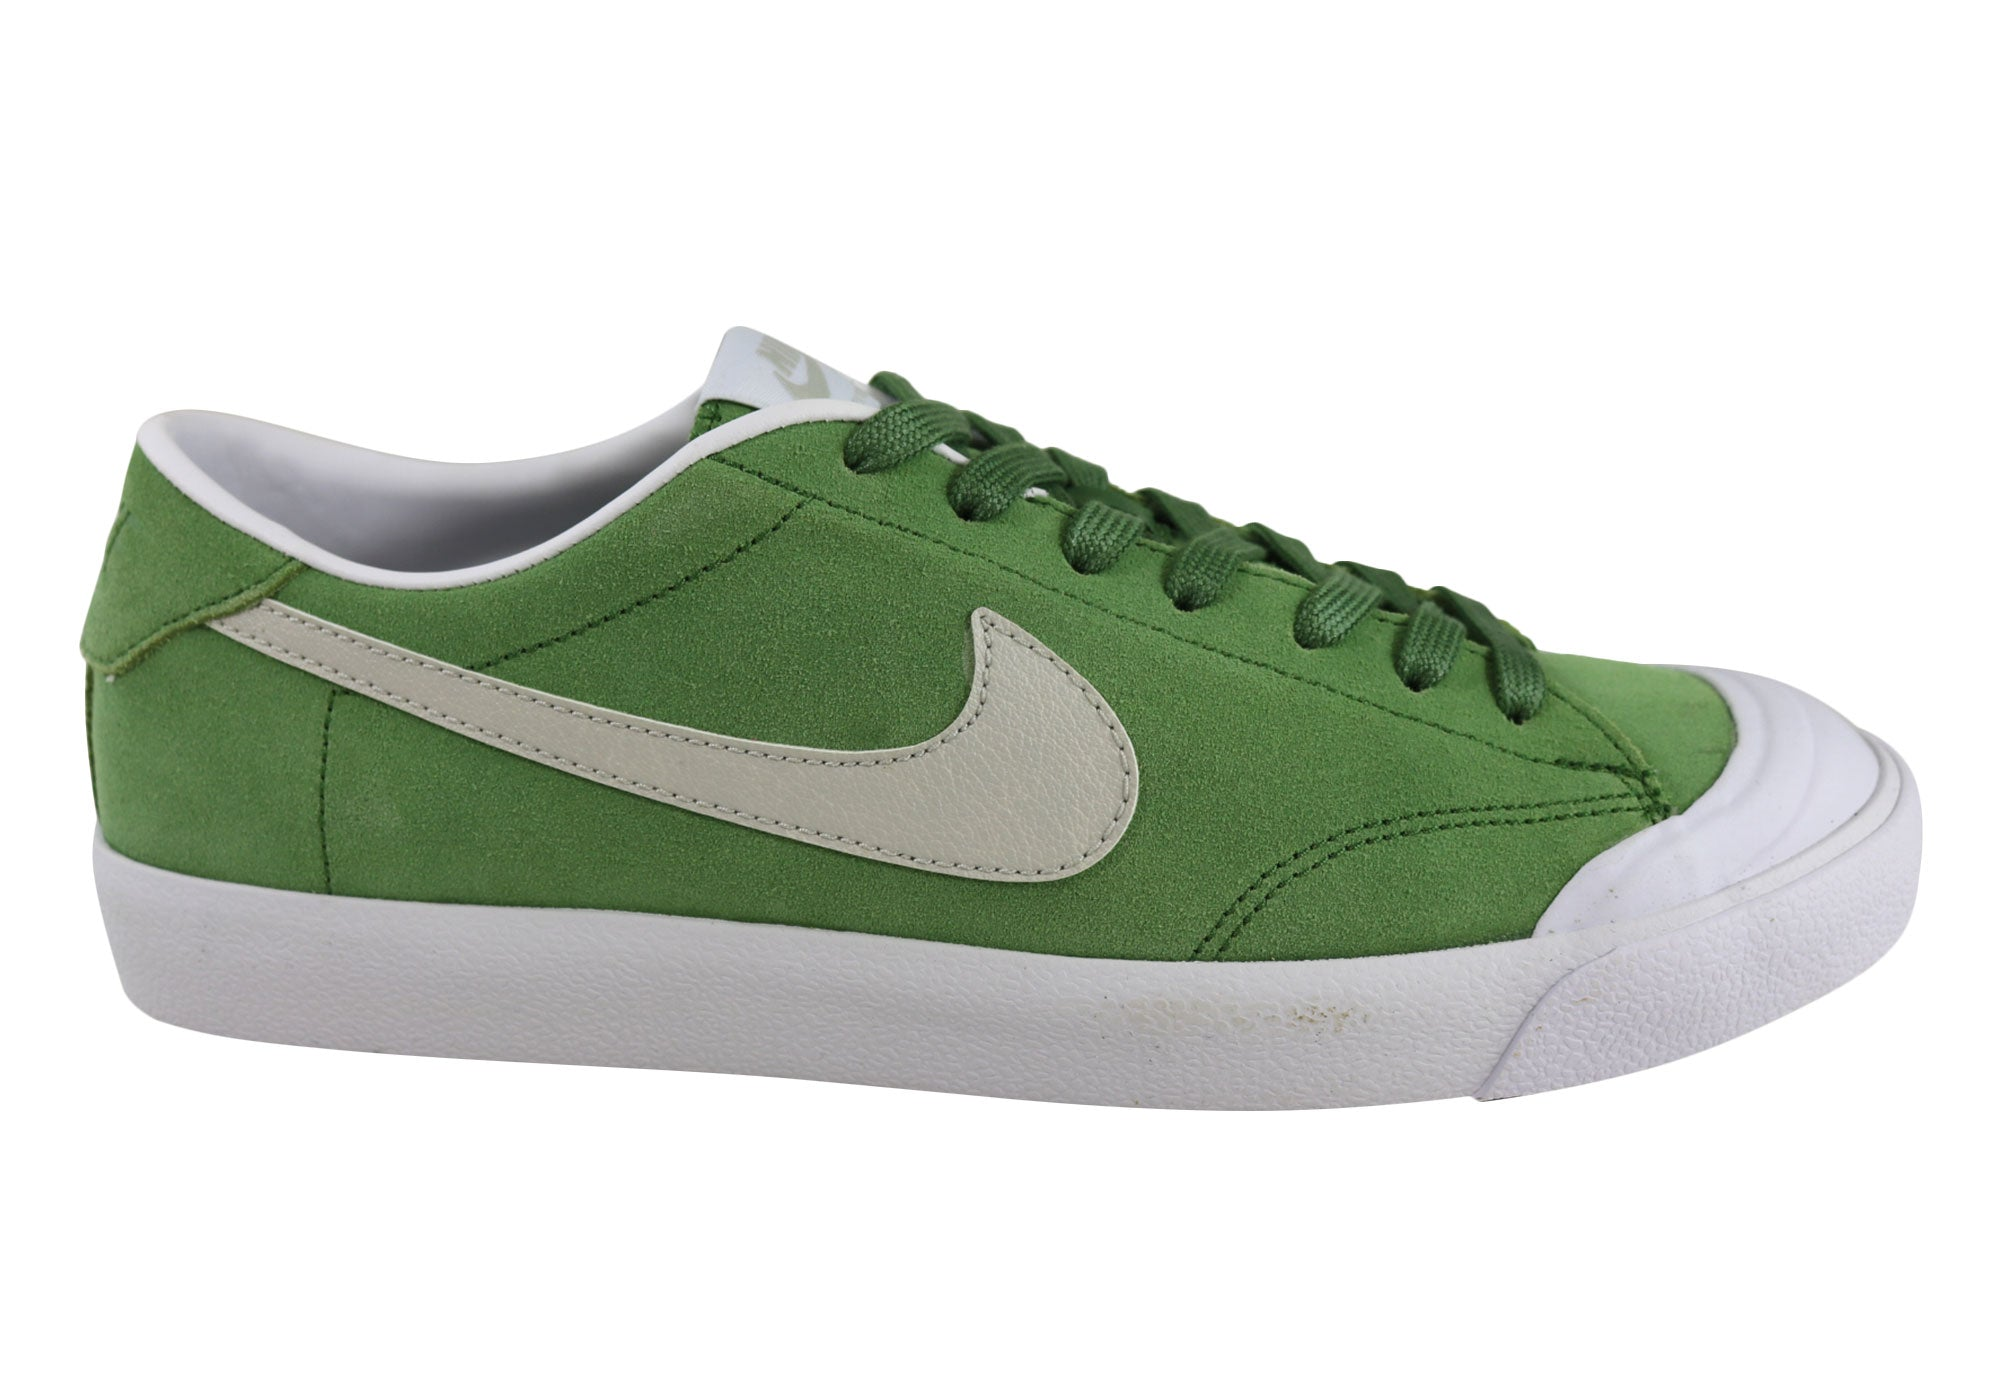 newest 58cbd 8319d New Mens Nike Sb Skate Board Zoom All Court Ck Casual Suede Shoes   eBay